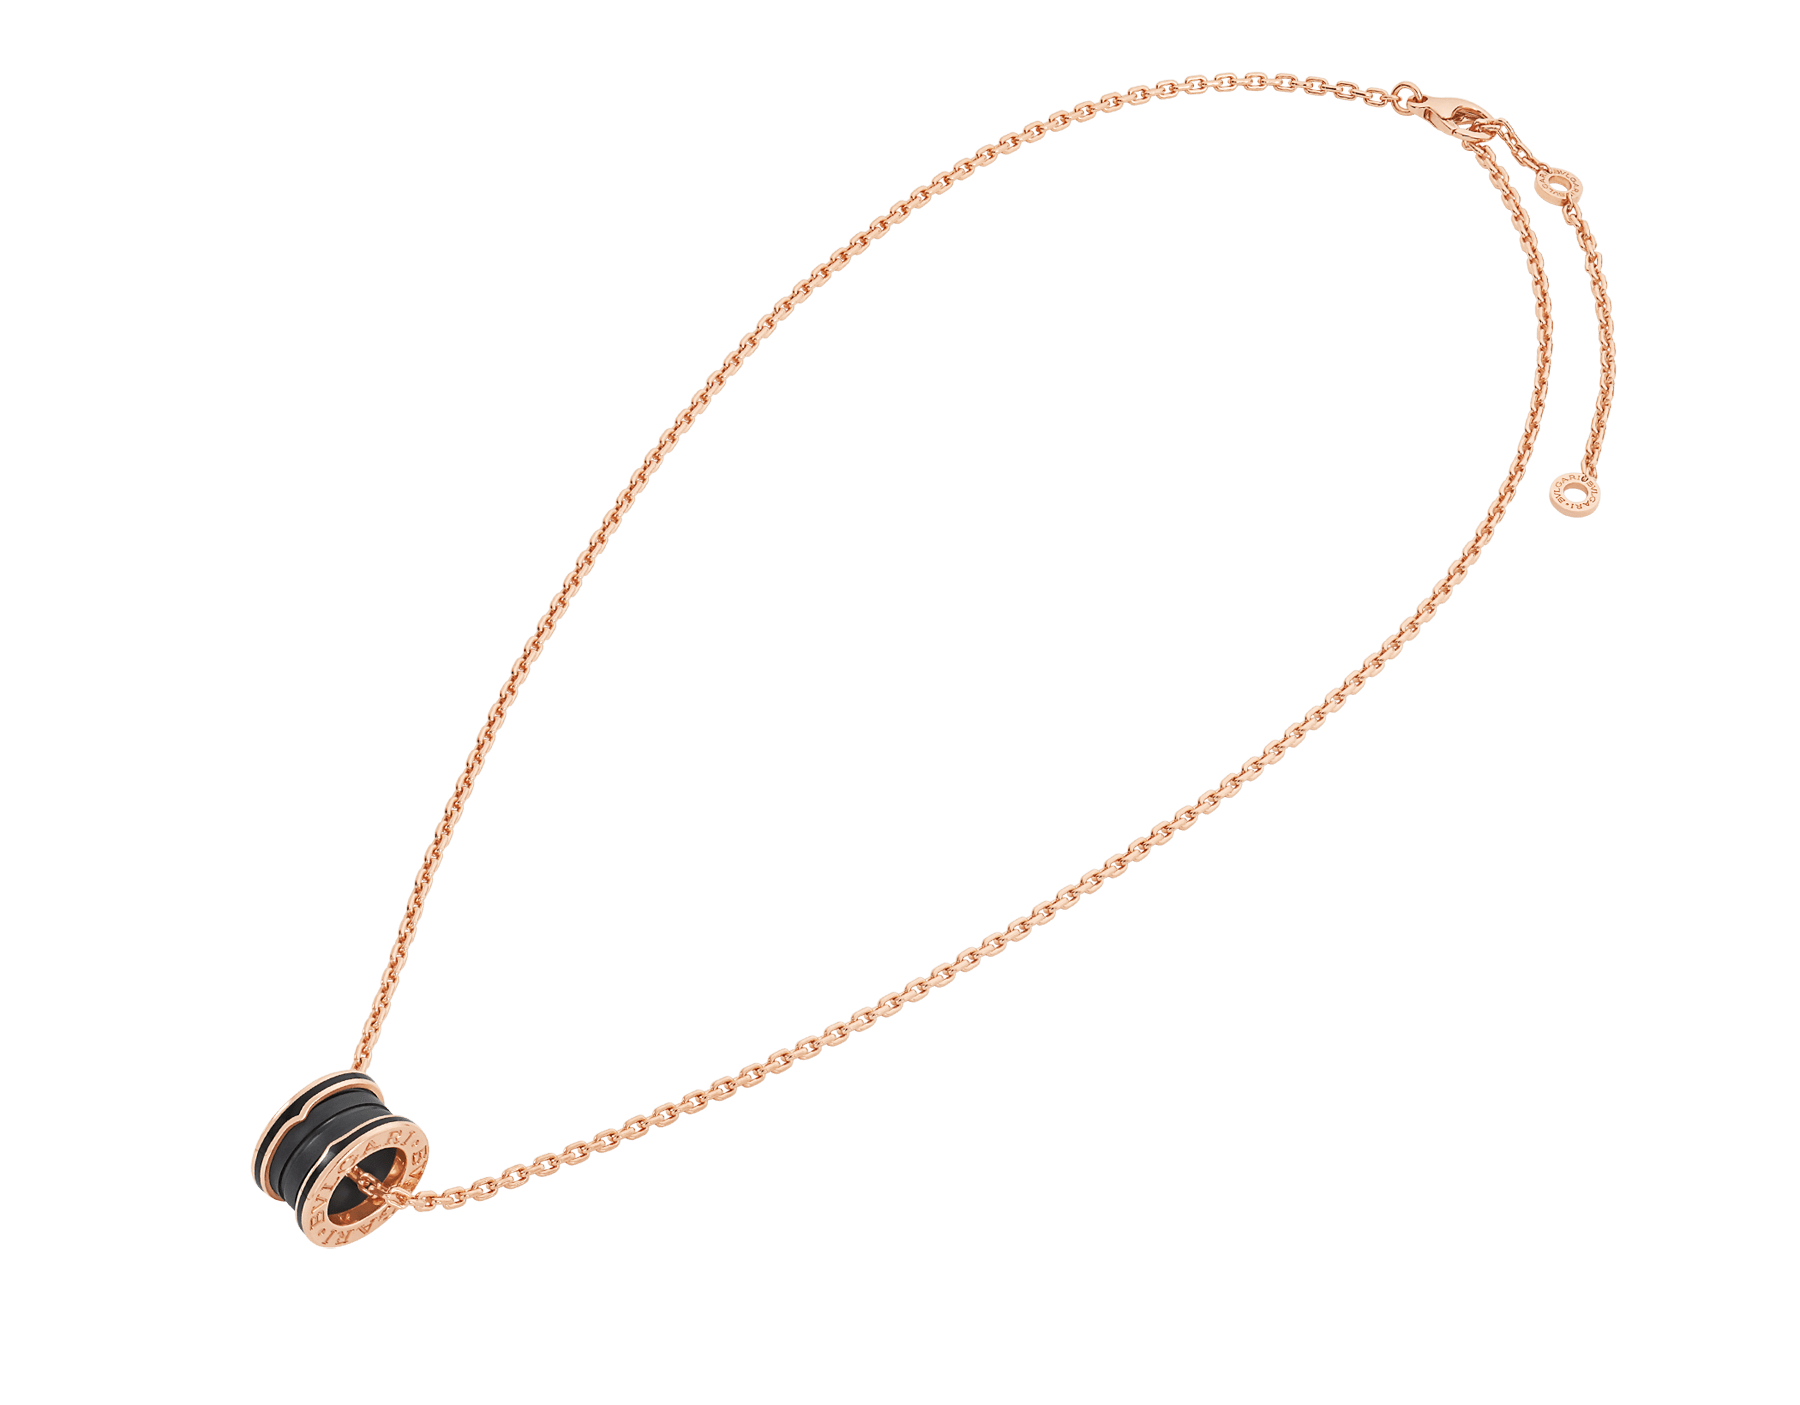 B.zero1 pendant necklace in 18 kt rose gold with matte black ceramic 358050 image 2